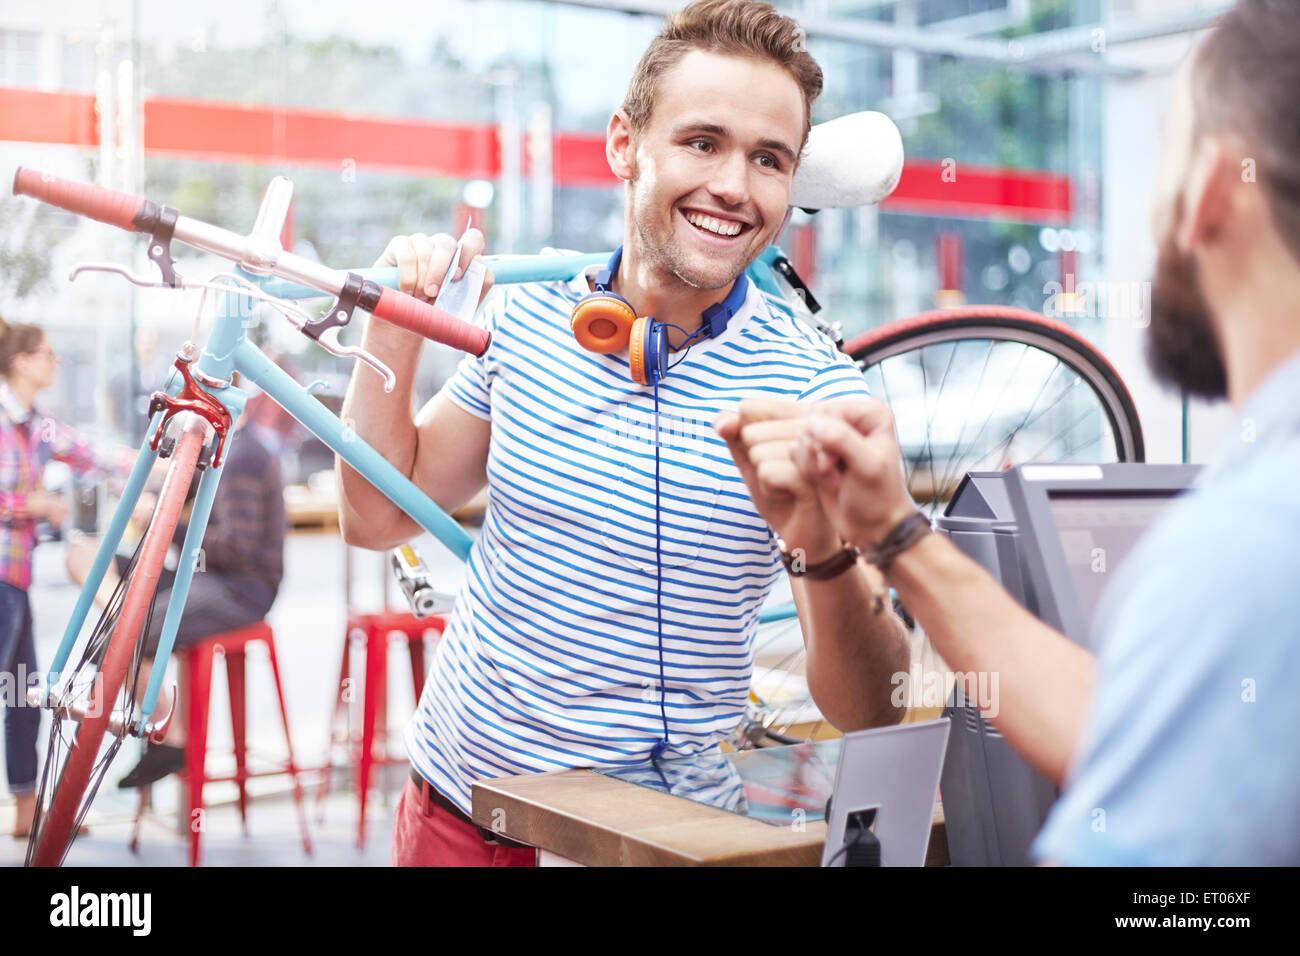 Man with bicycle fist bumping worker in cafe - Stock Image